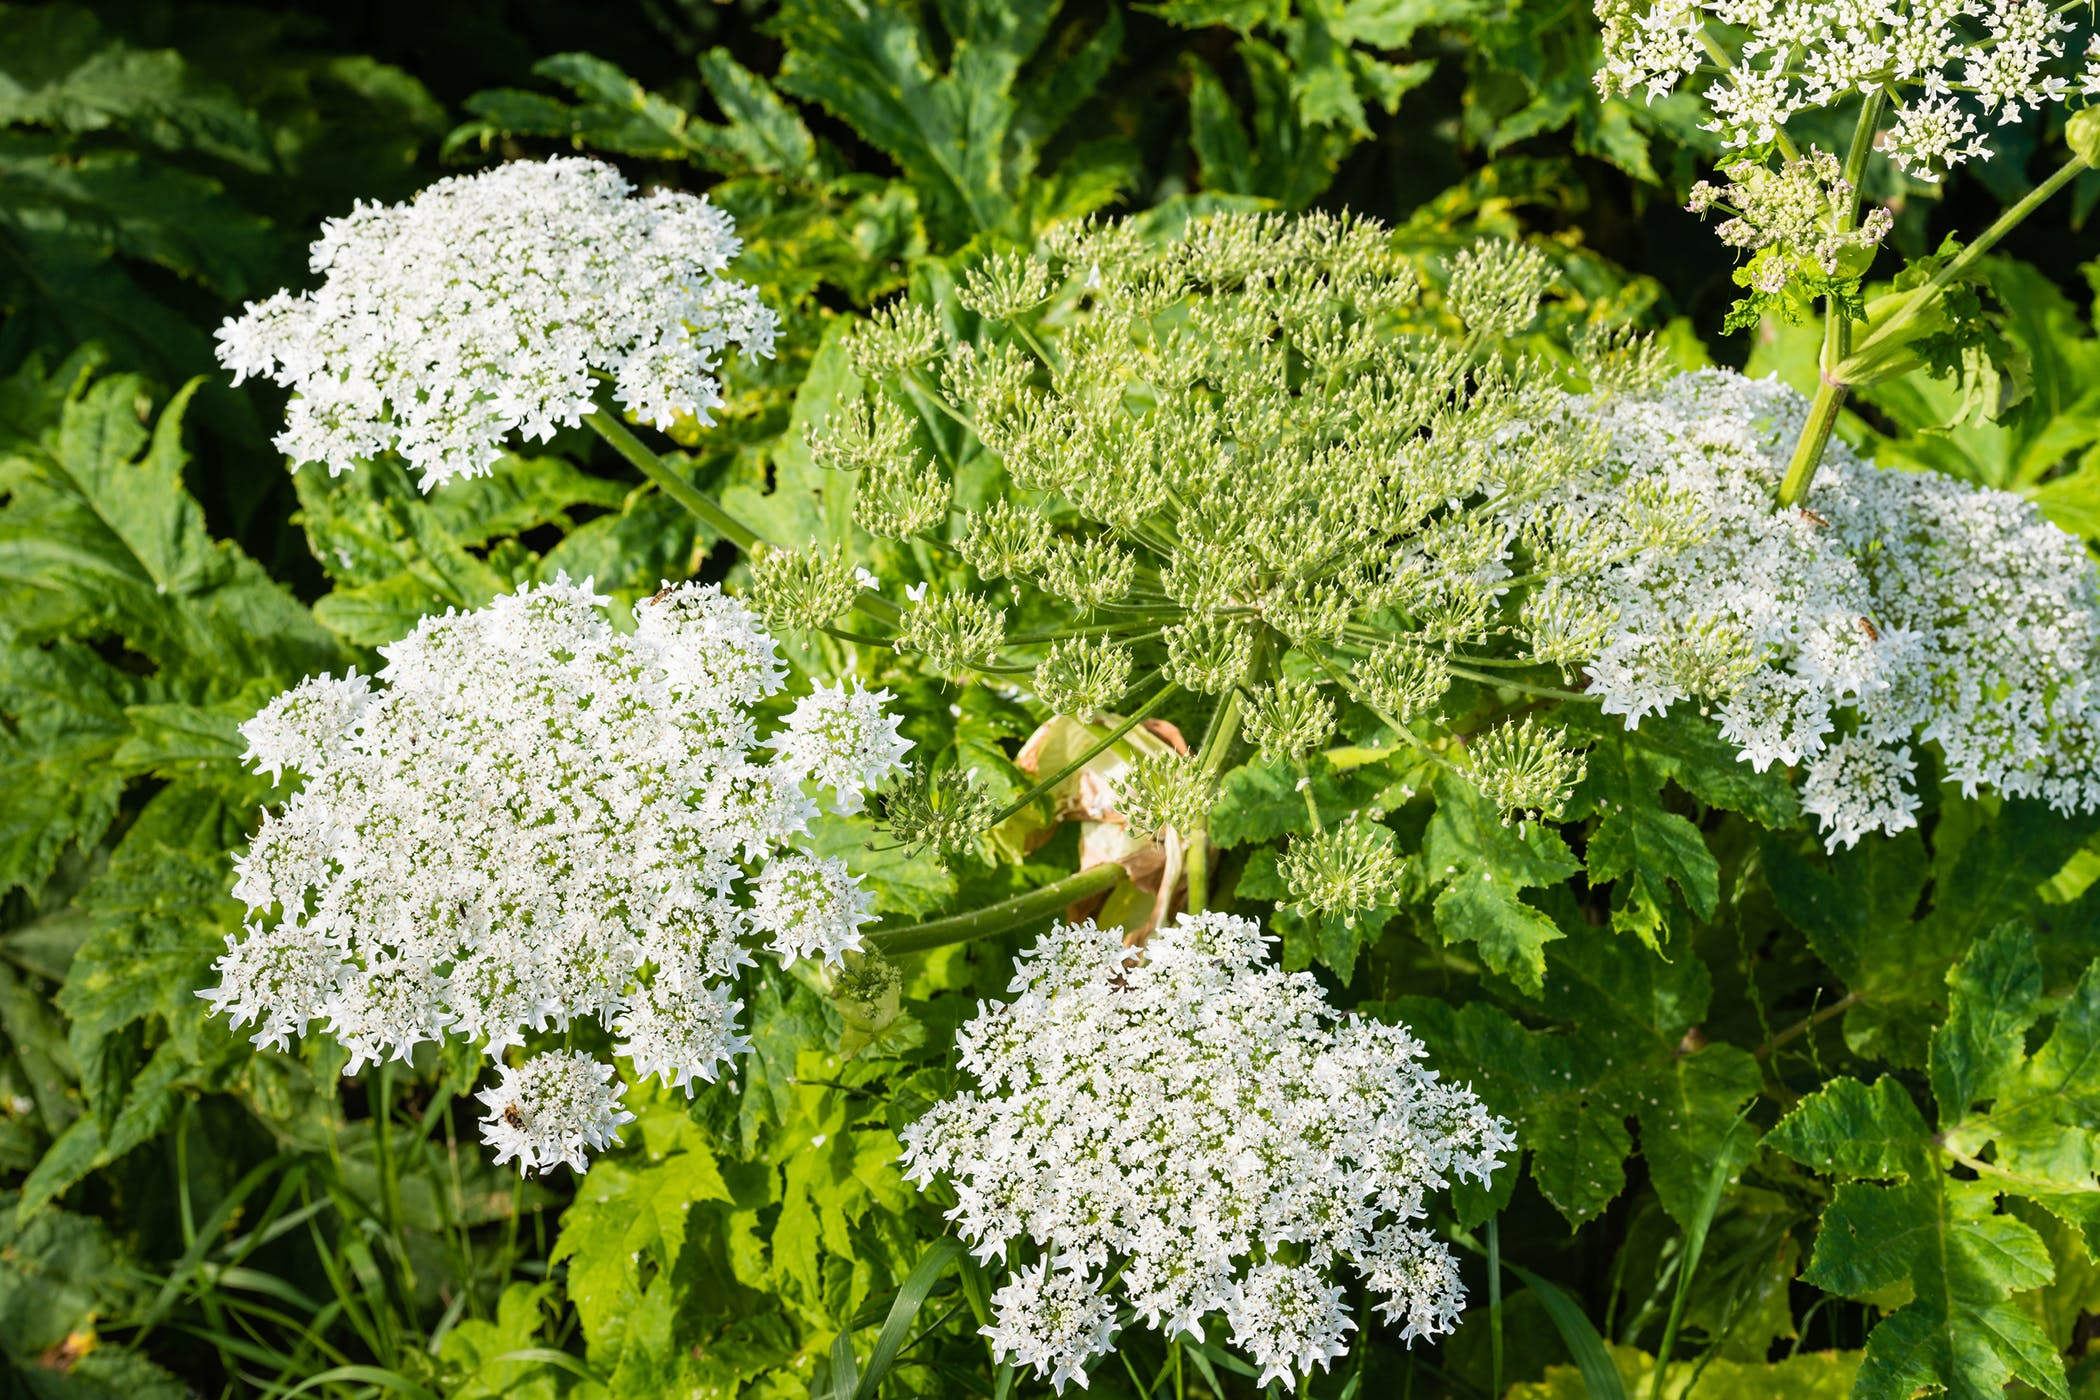 Giant Hogweed Poisoning in Cats